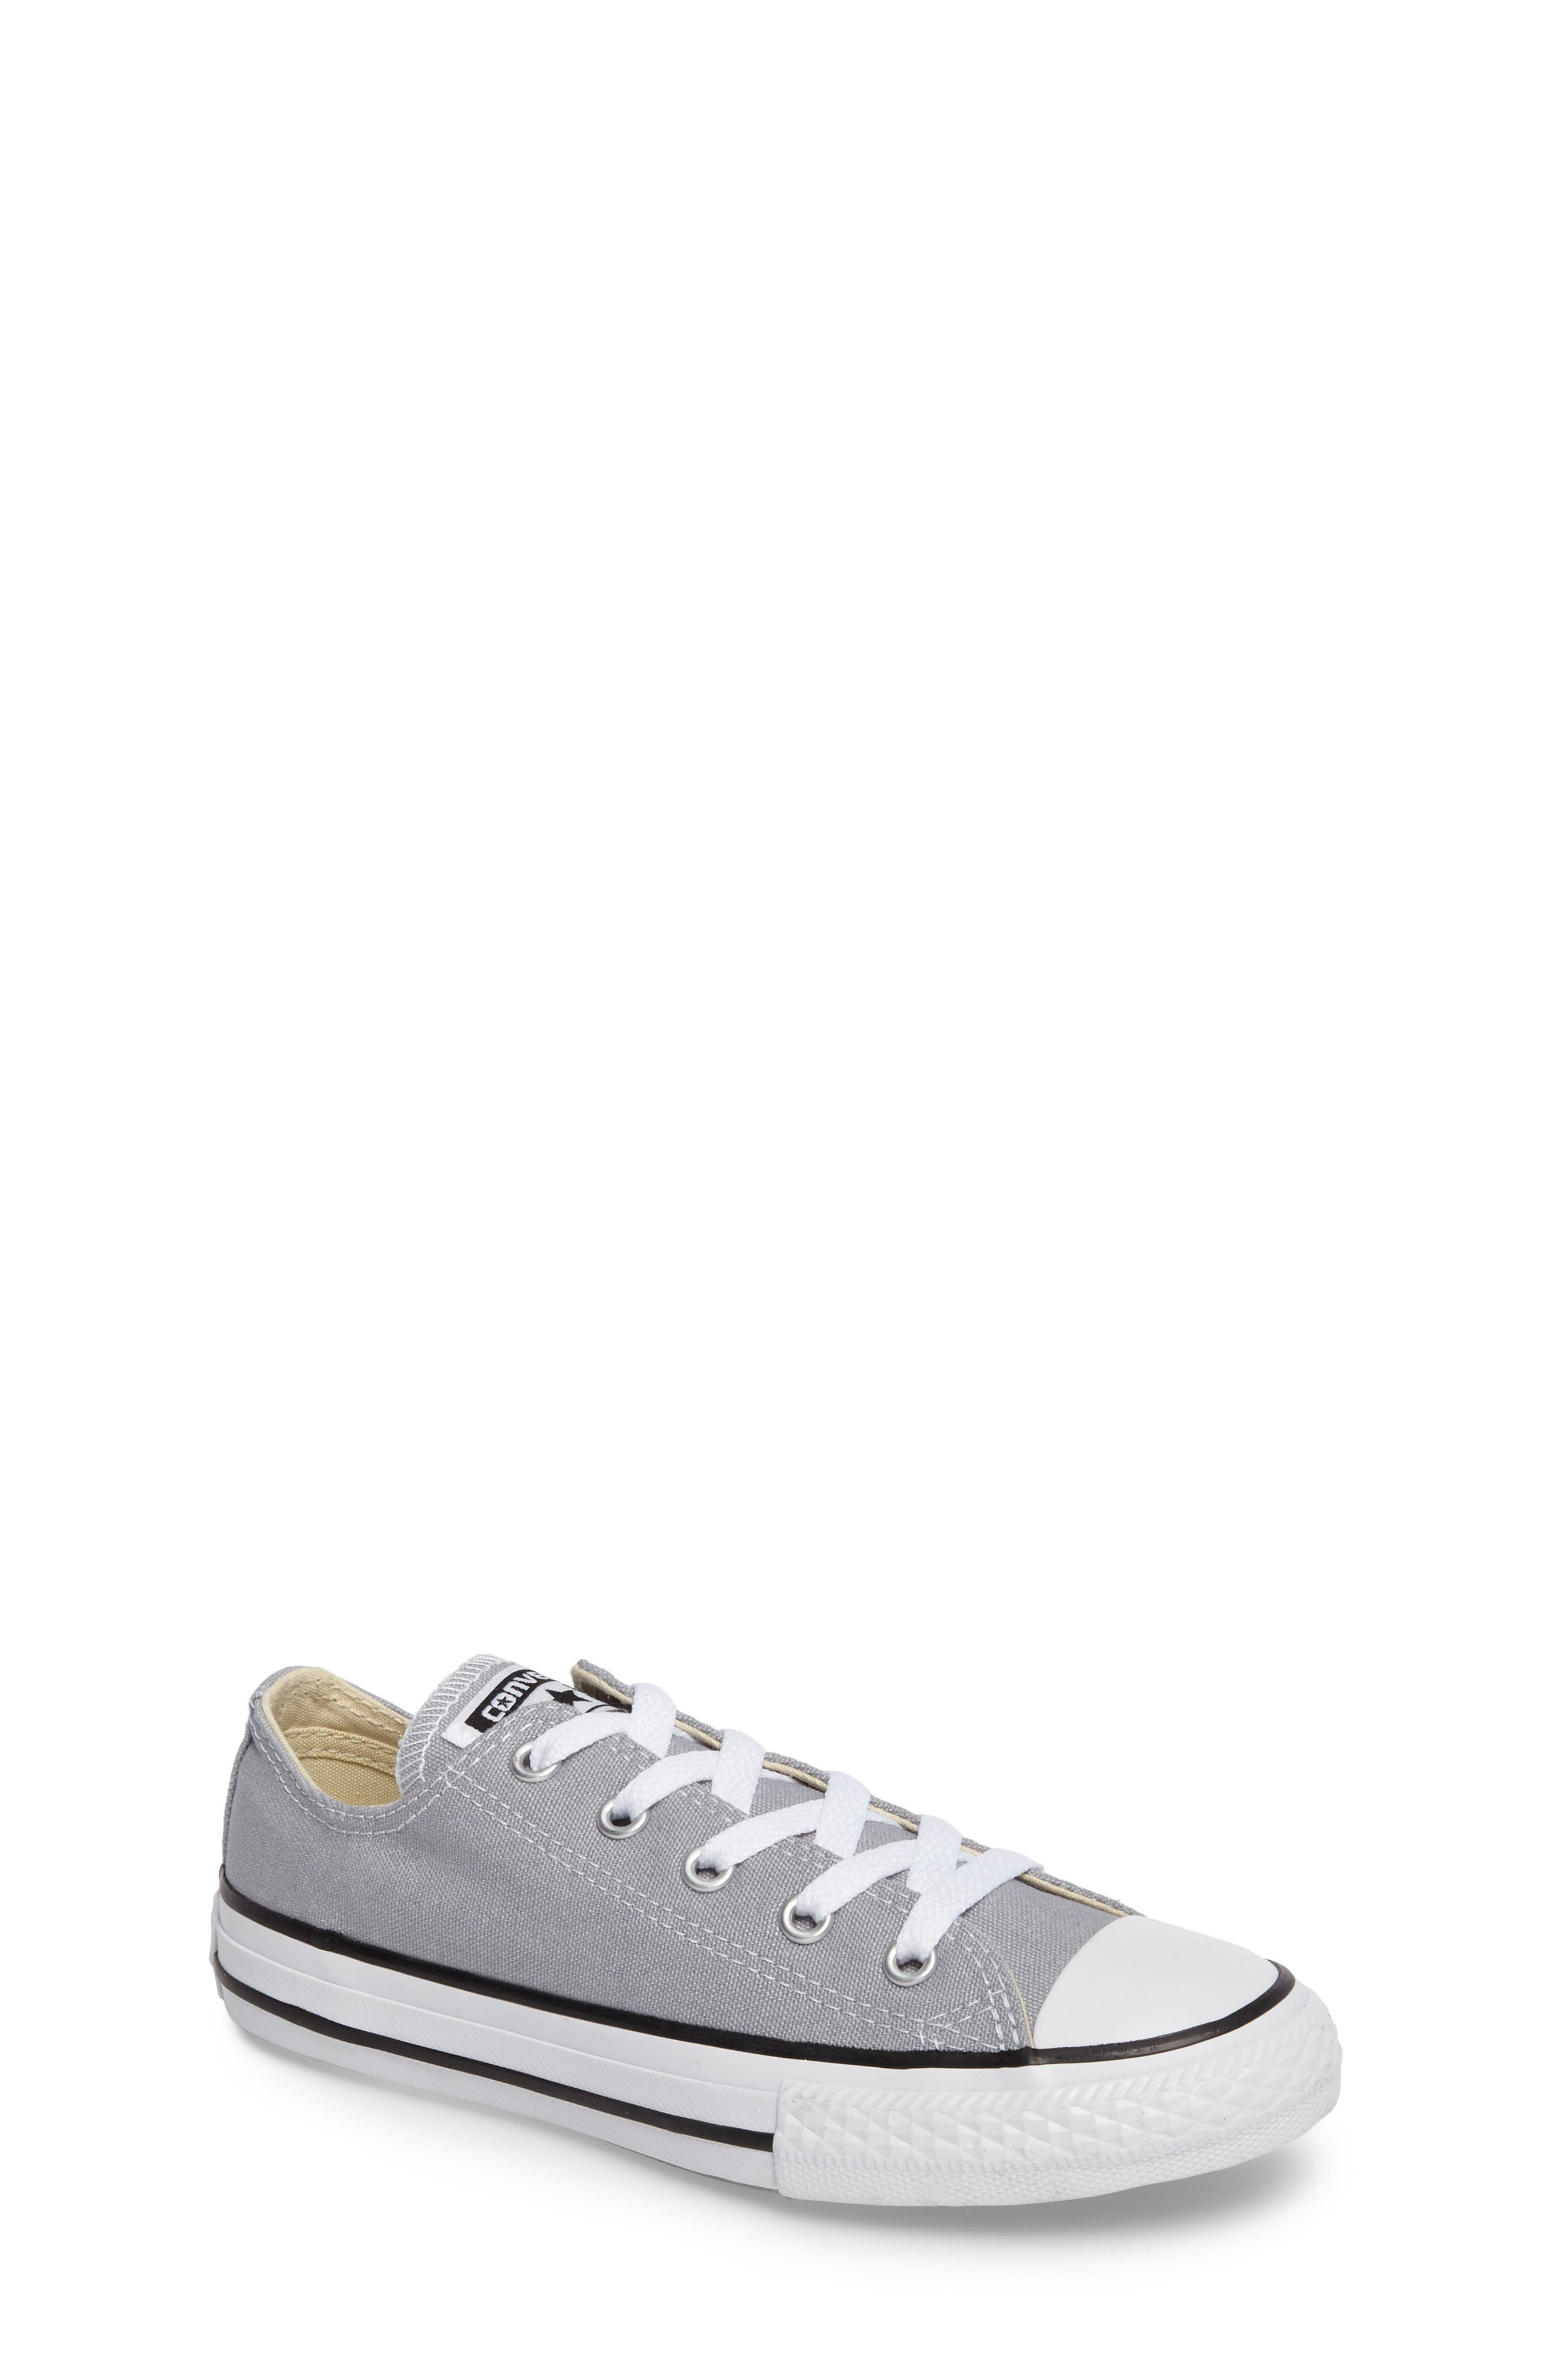 Main Image - Converse Chuck Taylor® All Star® 'Ox' Low Top Sneaker (Baby, Walker, Toddler & Little Kid)